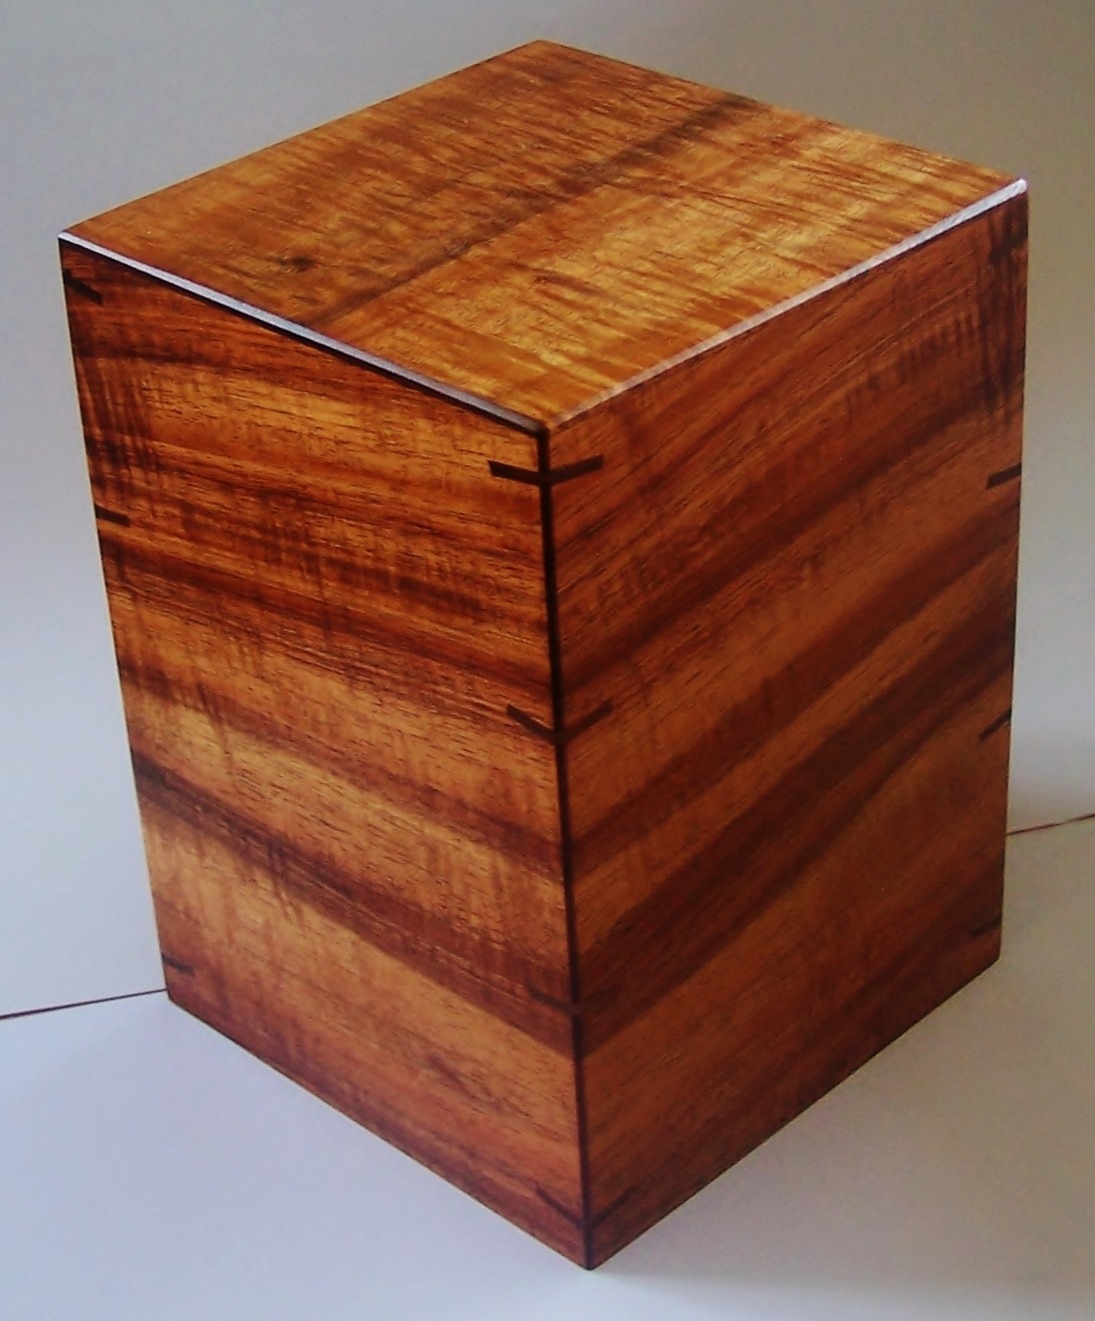 Curly Koa Urn Available Now